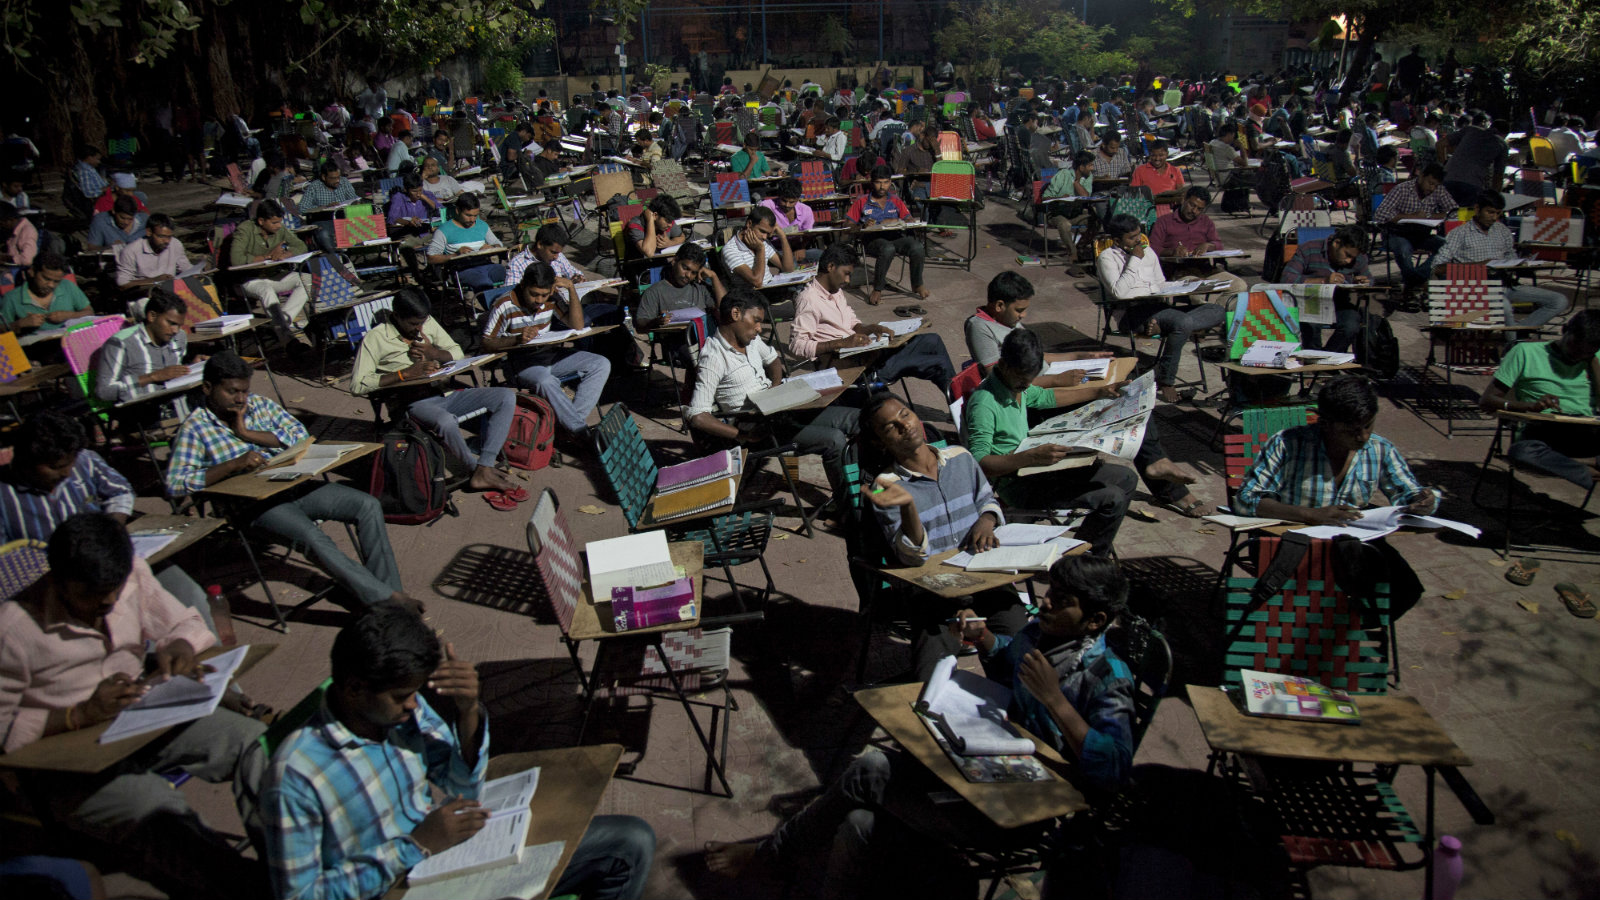 In this Thursday, Feb. 16, 2017 photo, hundreds of Indian college students and job-seekers study in an open ground outside the City Central Library in Hyderabad, India. The open ground here turns into a giant outdoor classroom every day when hundreds of young college students and job-seekers, armed with their books and other study material sit and prepare for examinations till late at night. Many of them bring their own chairs, which they chain to the outer metal grill of the building overnight. Nowhere is the search for jobs more desperate than in India, where around 13 million young people enter the job market every year.